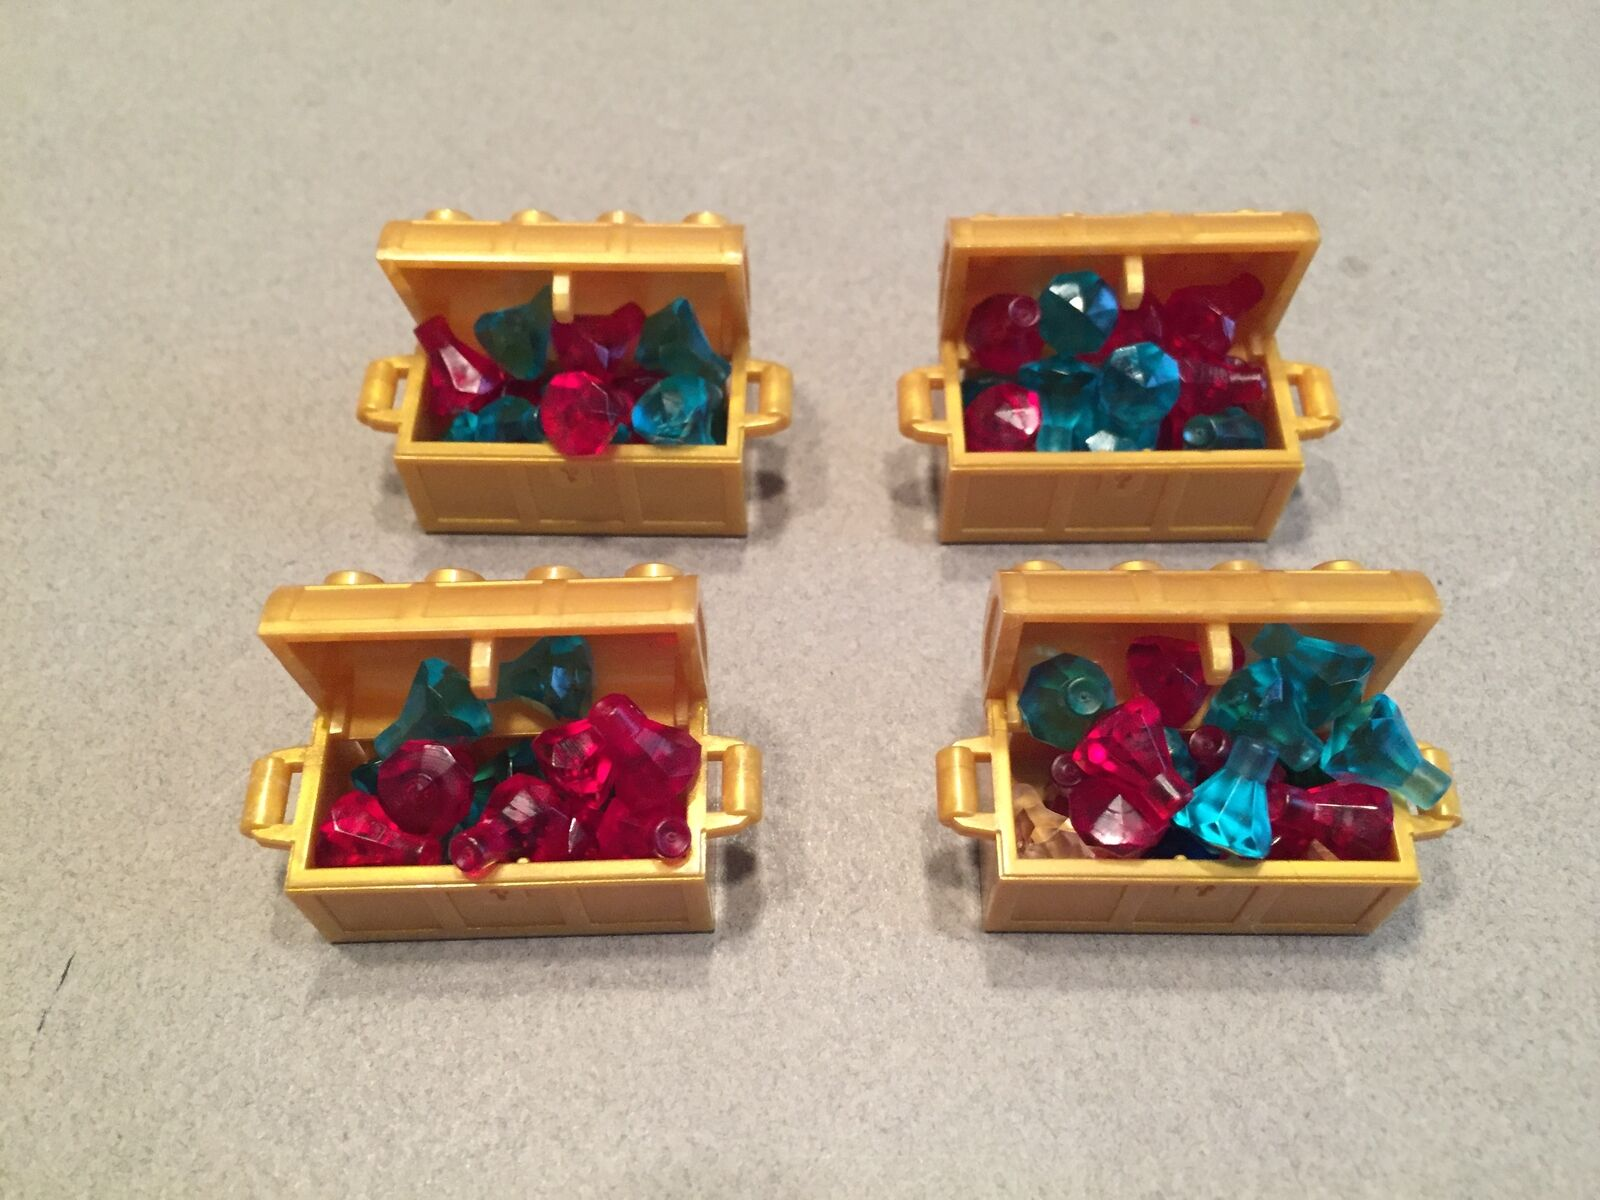 Lego lot of gold treasure chests filled w rubies and